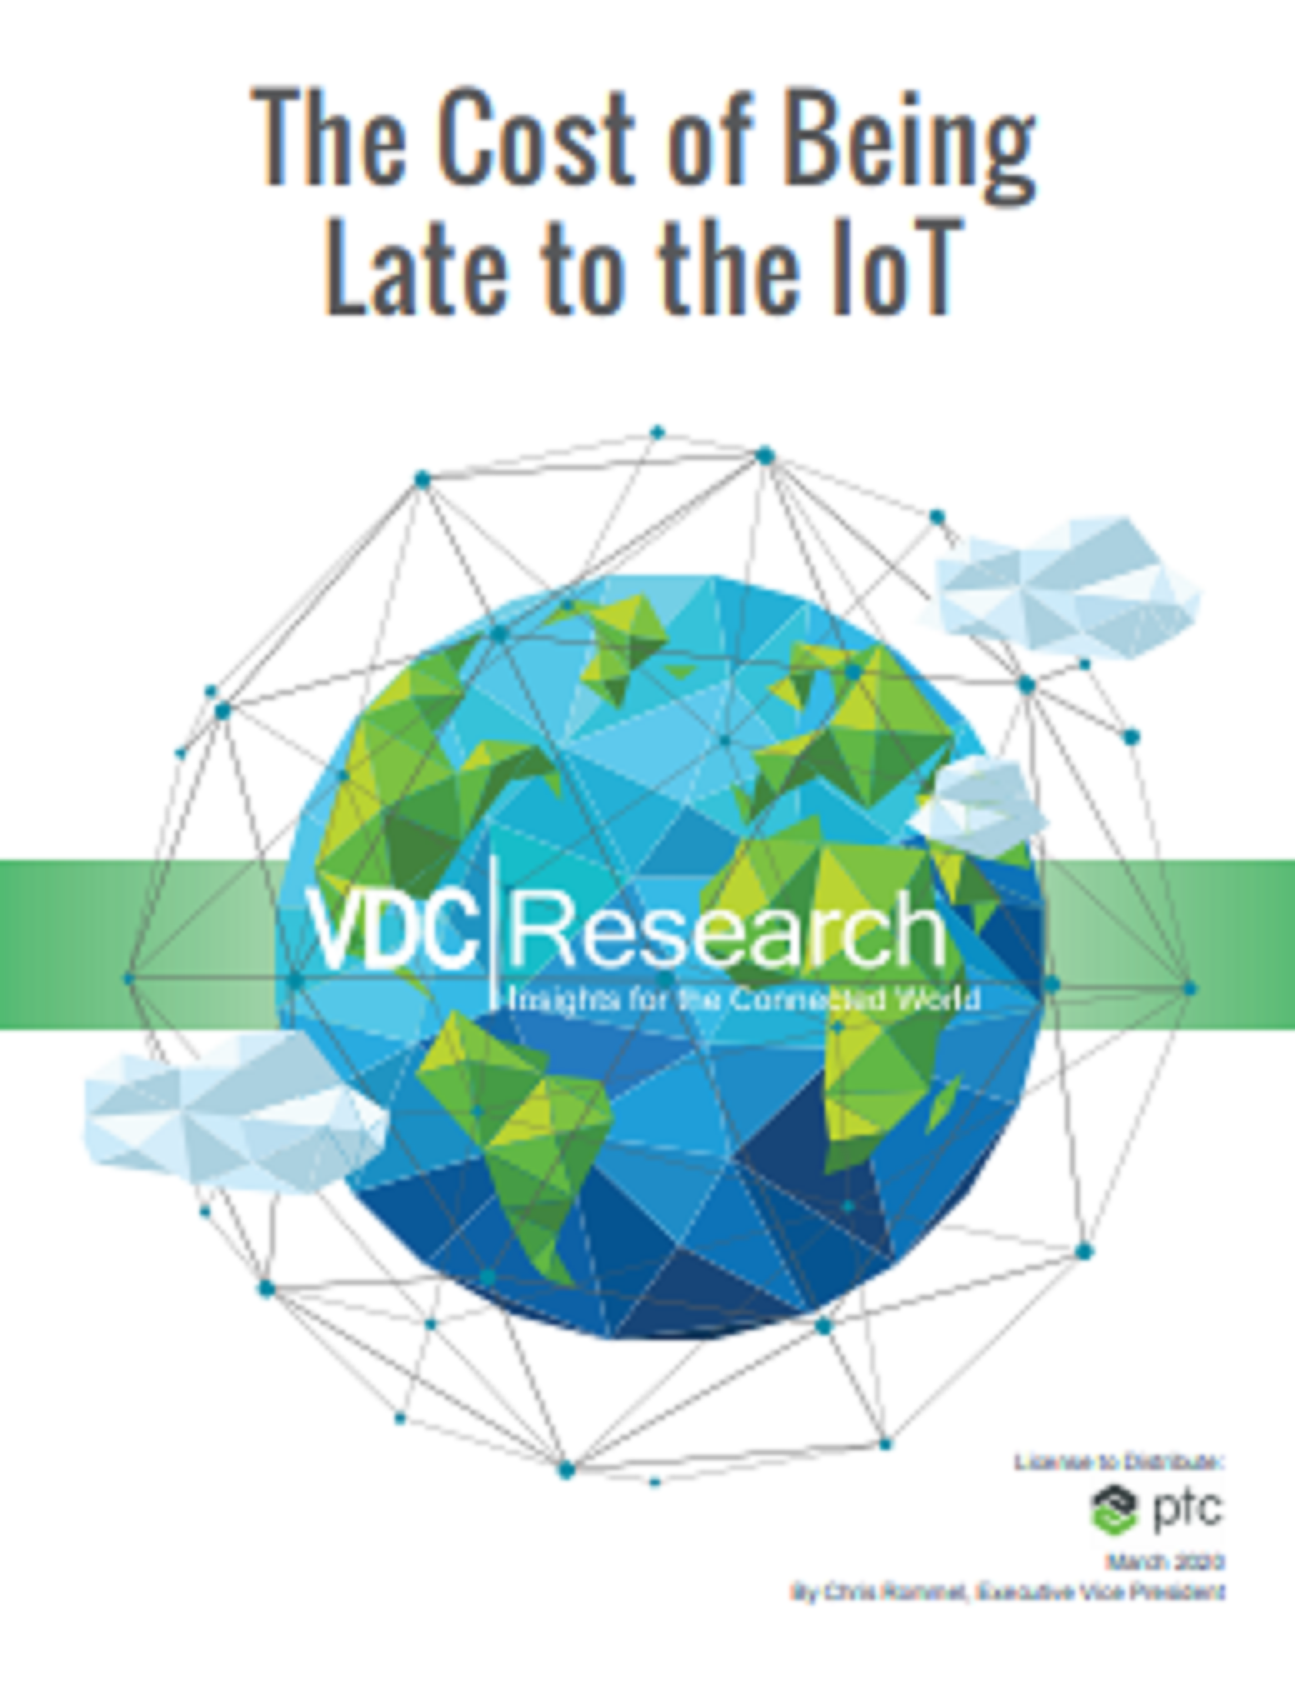 VDC Research: The Cost of Being Late to IoT Adoption